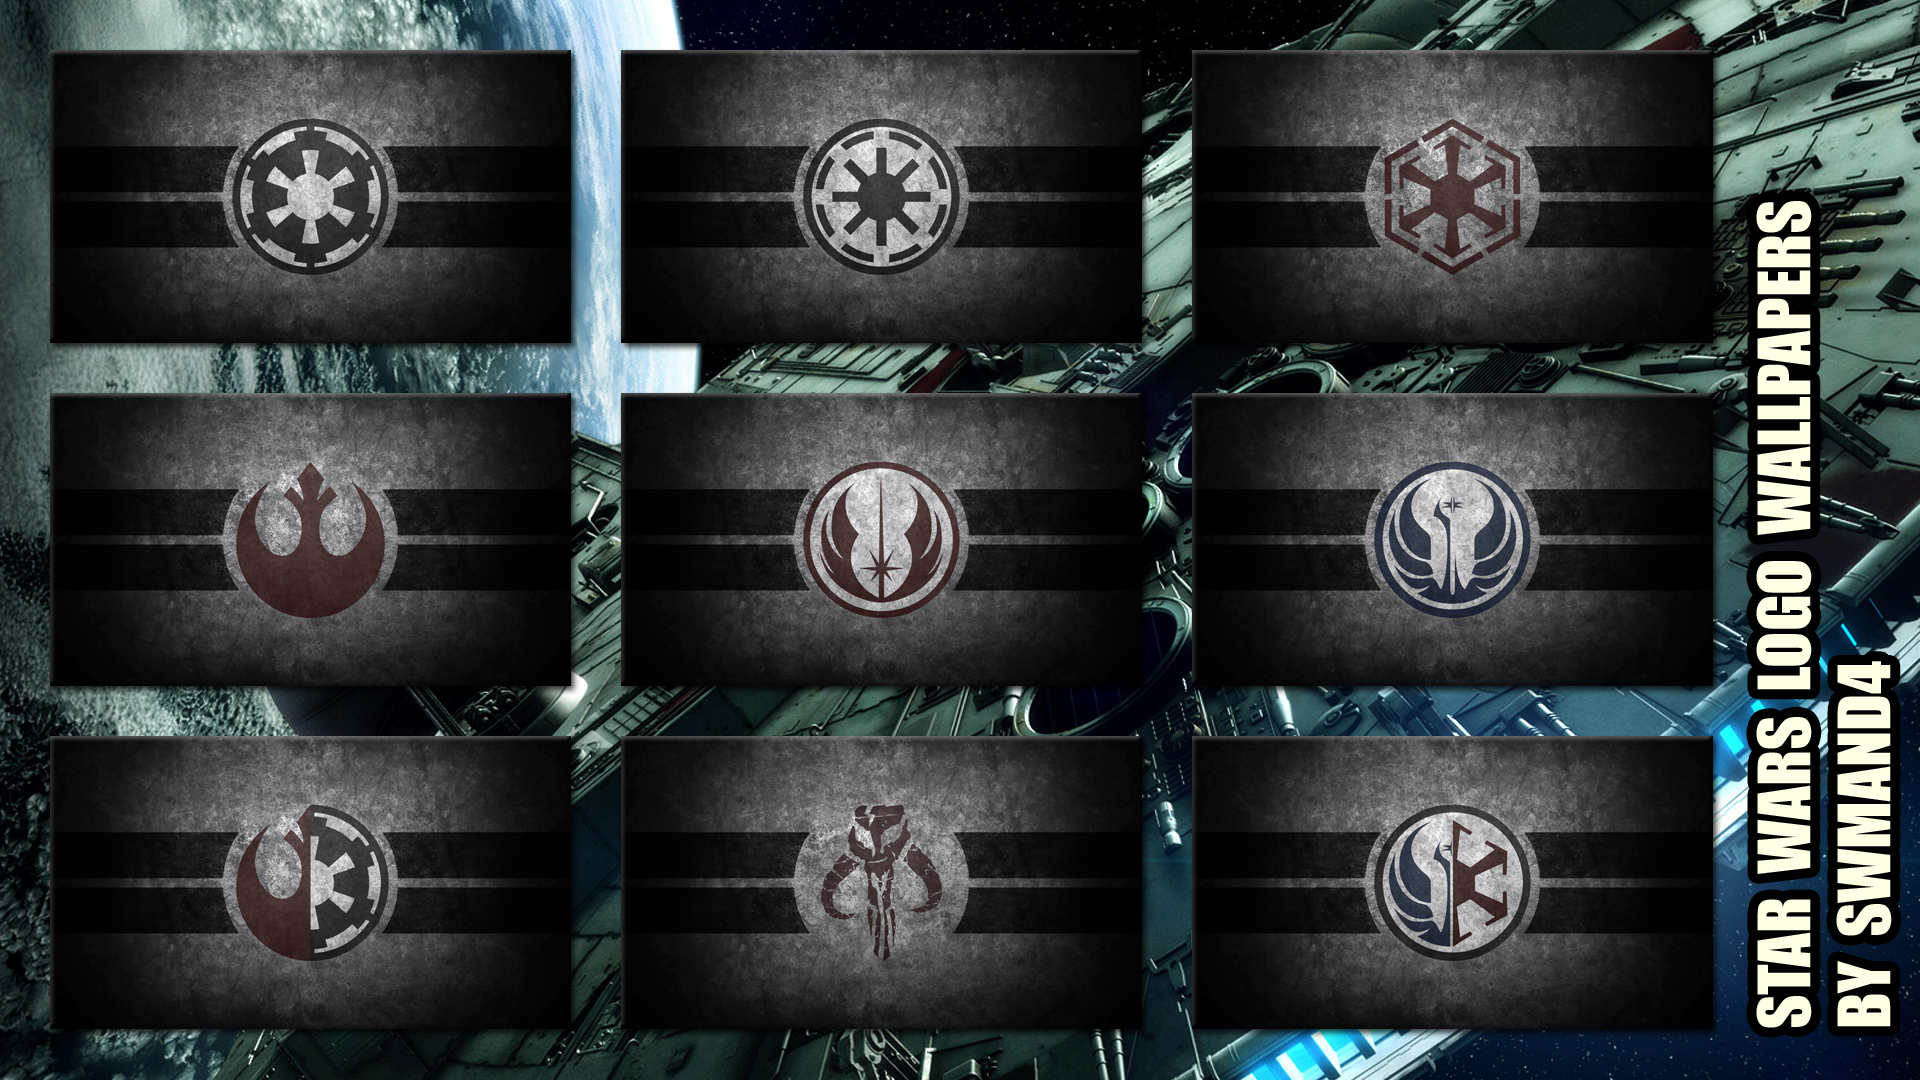 Star Wars Logos Wallpapers by swmand4